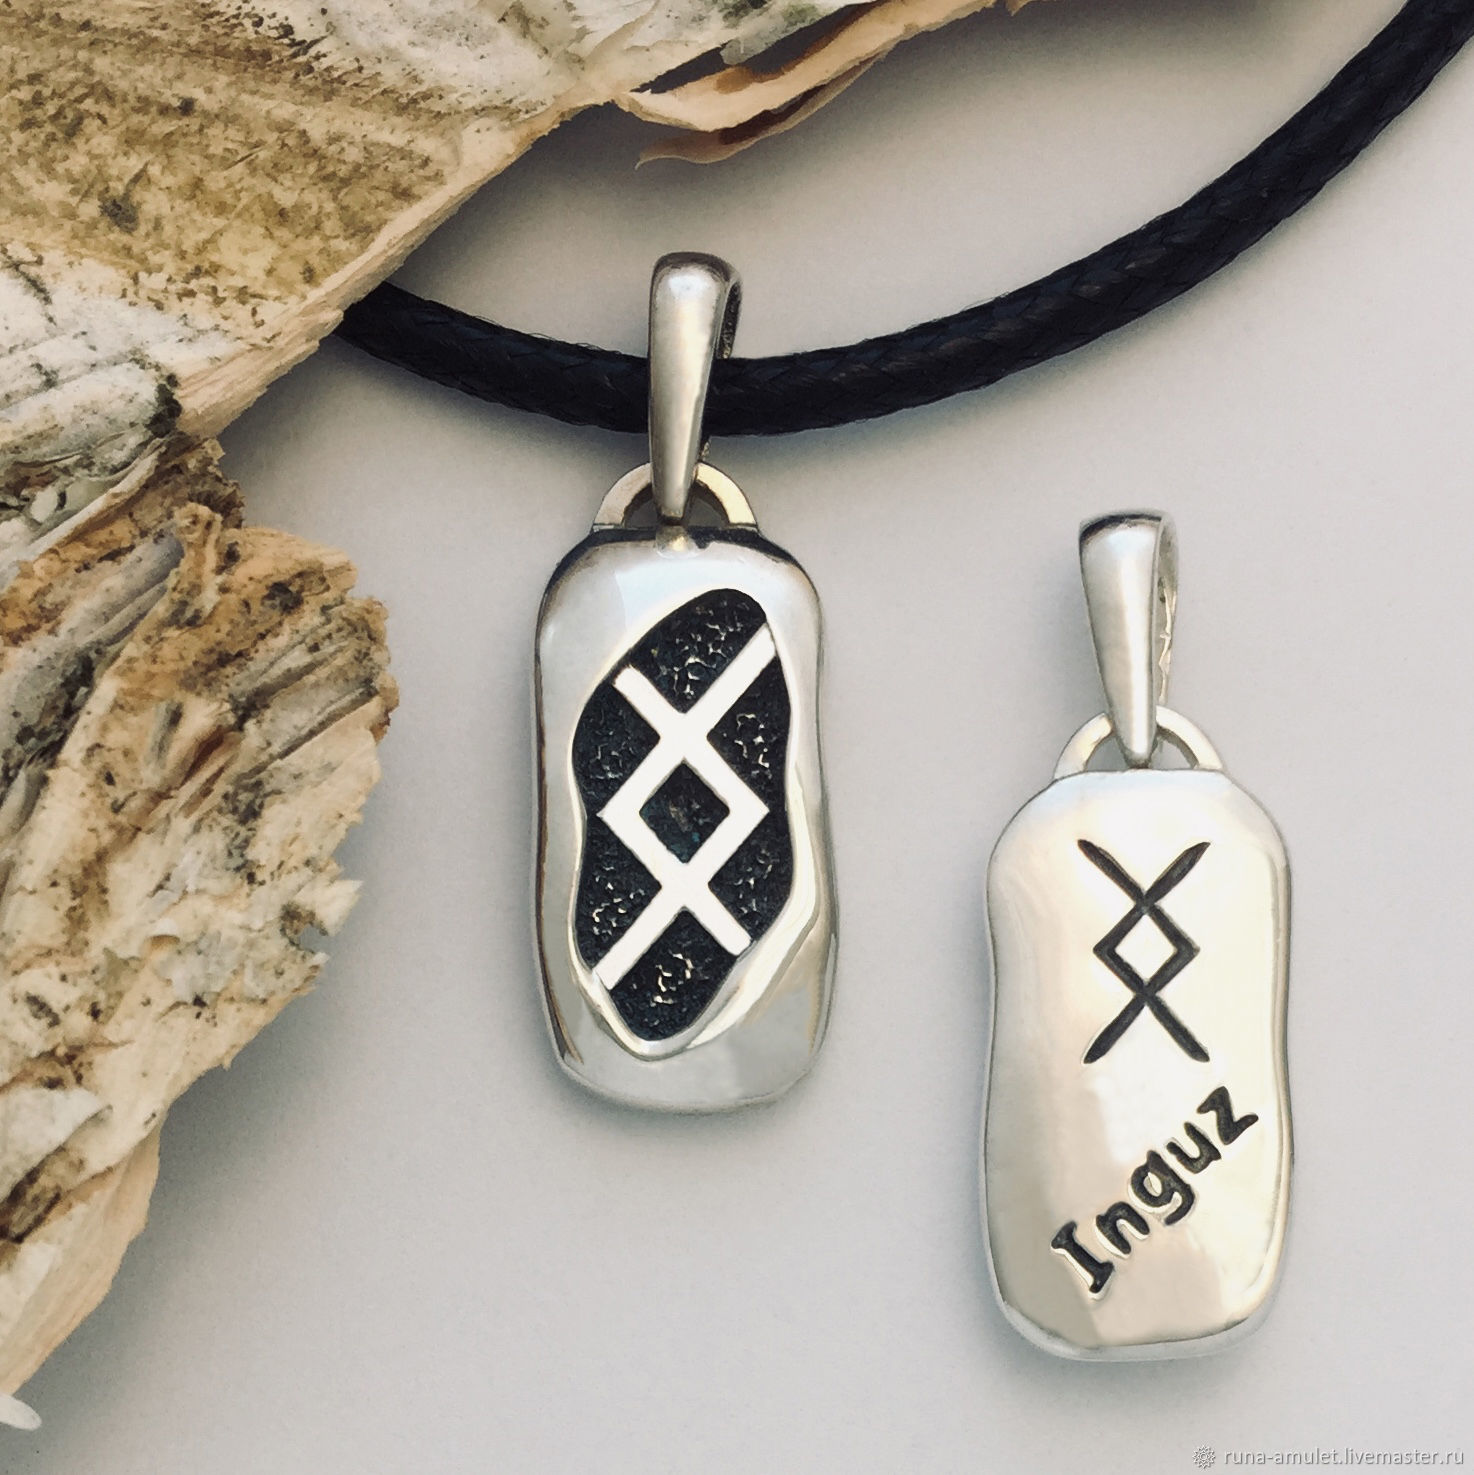 Amulet For the realization of the conceived